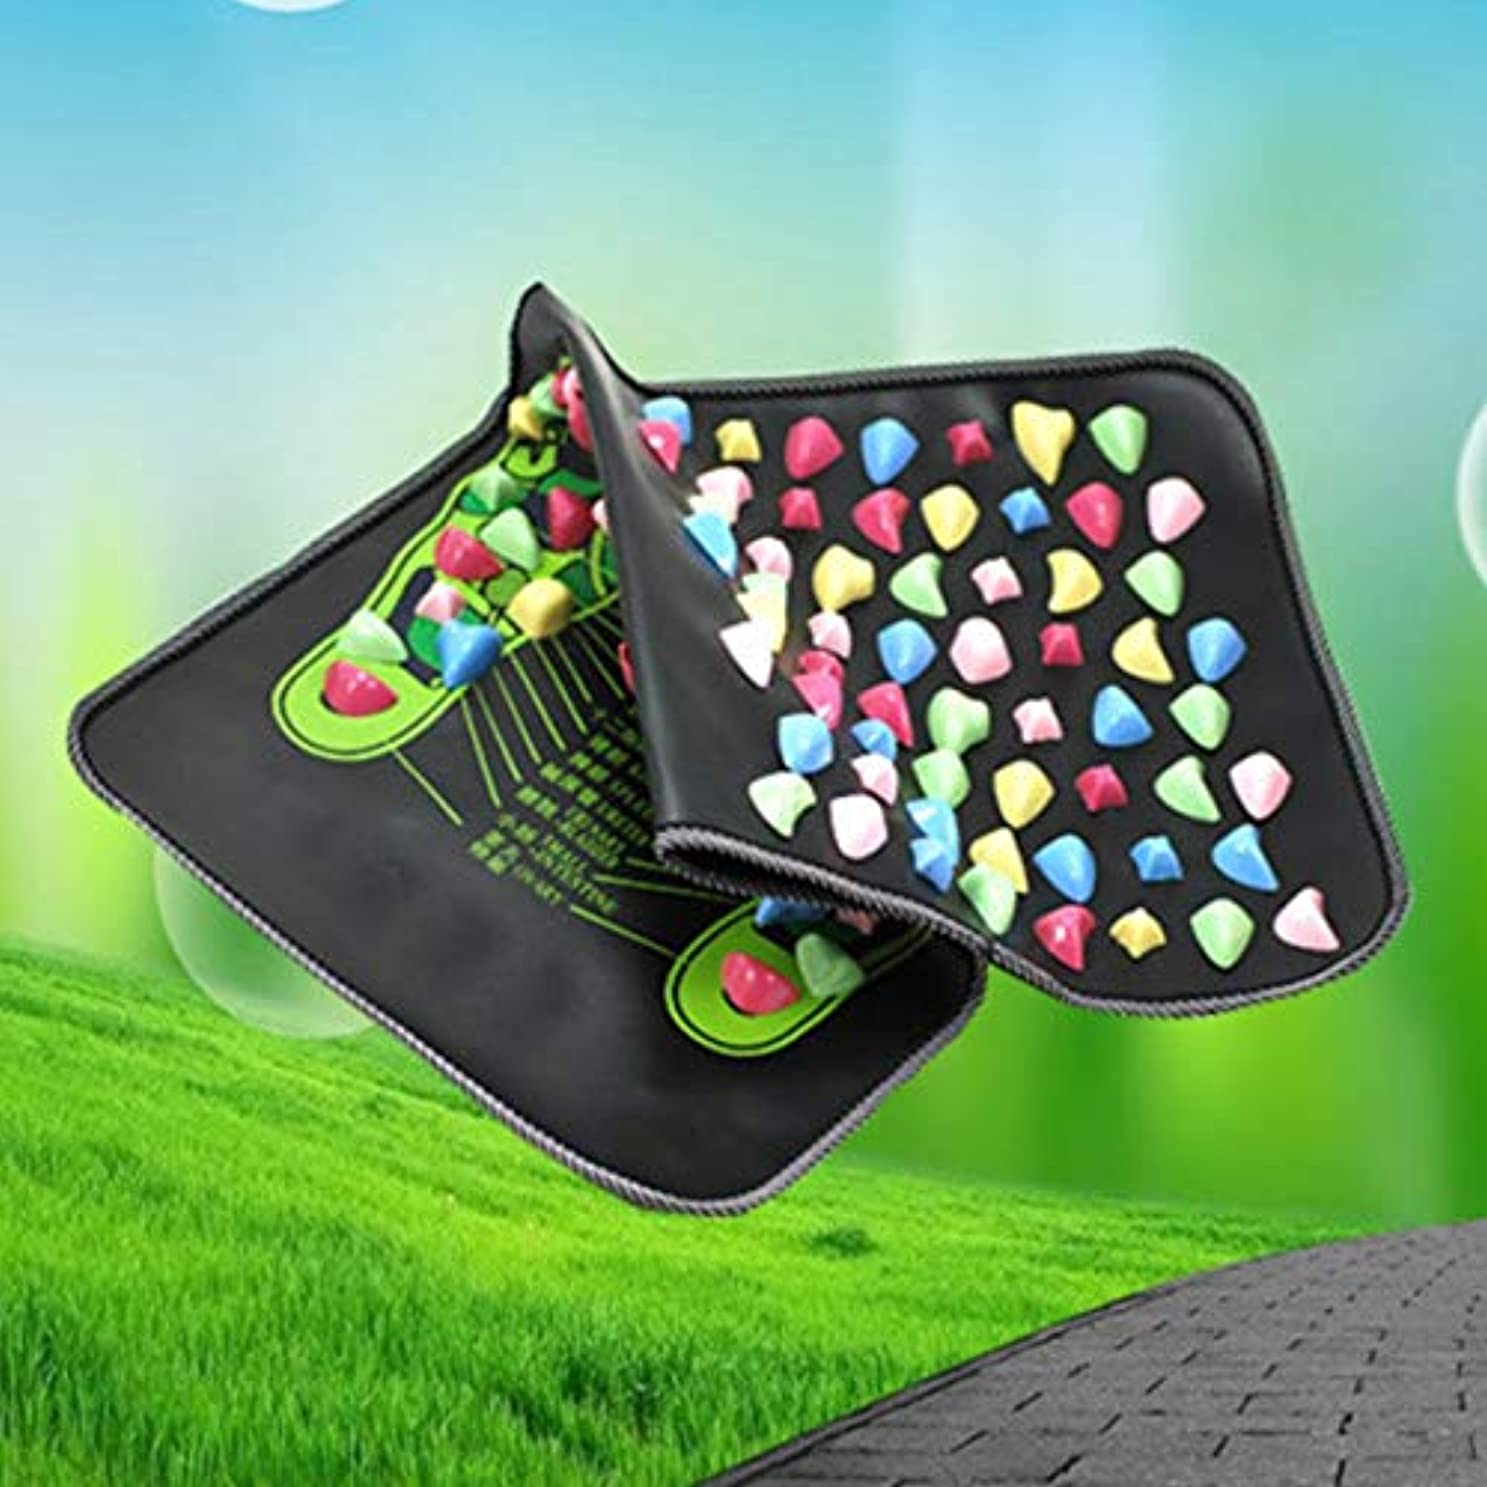 削る群れ時制Reflexology Walk Stone Foot Leg Pain Relieve Relief Walk Massager Mat Health Care Acupressure Mat Pad massageador